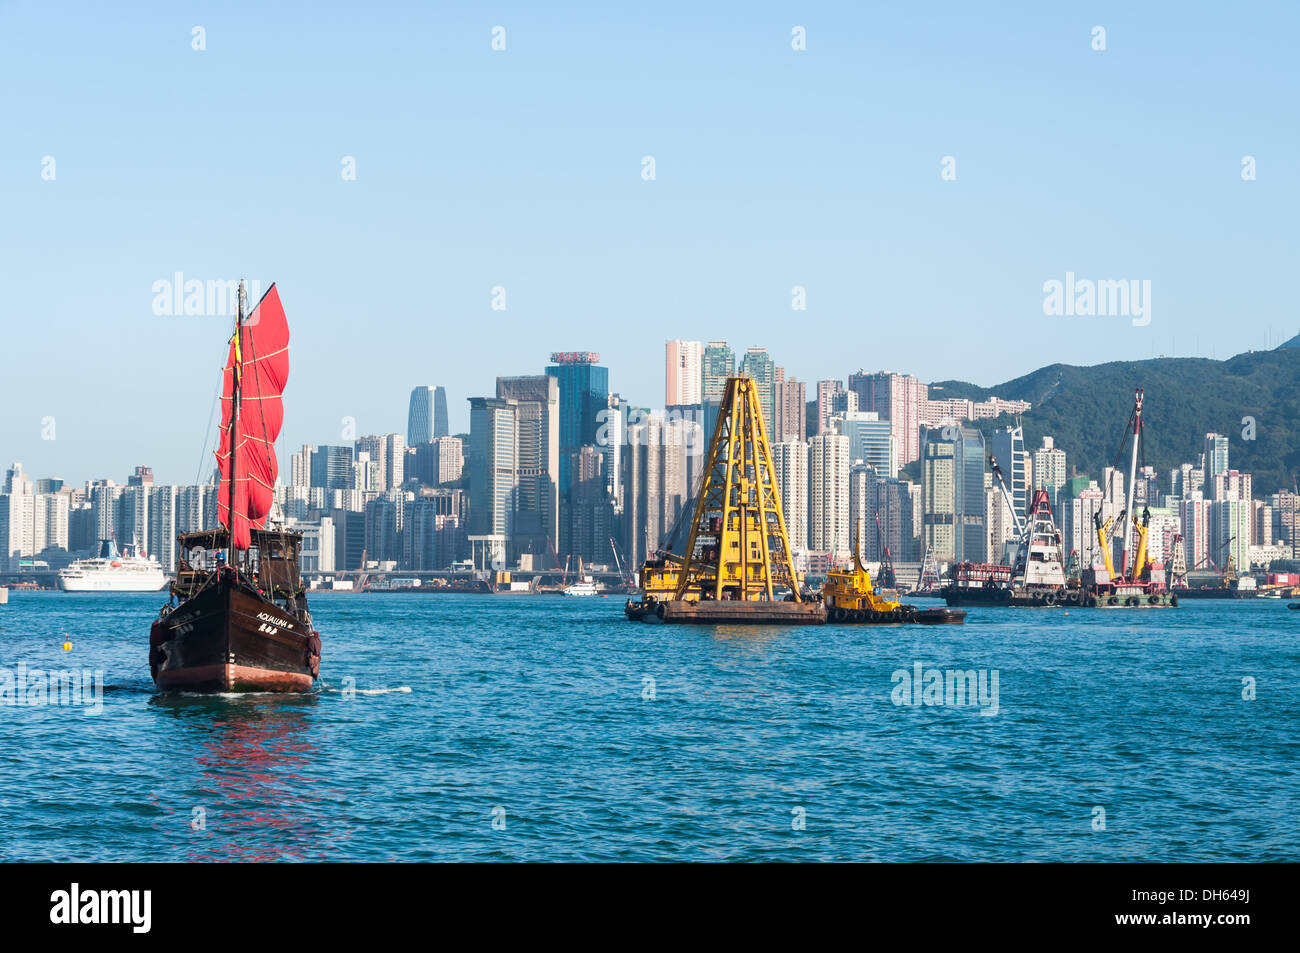 A traditional junk ship sails along Victoria Harbor in Hong Kong. - Stock Image